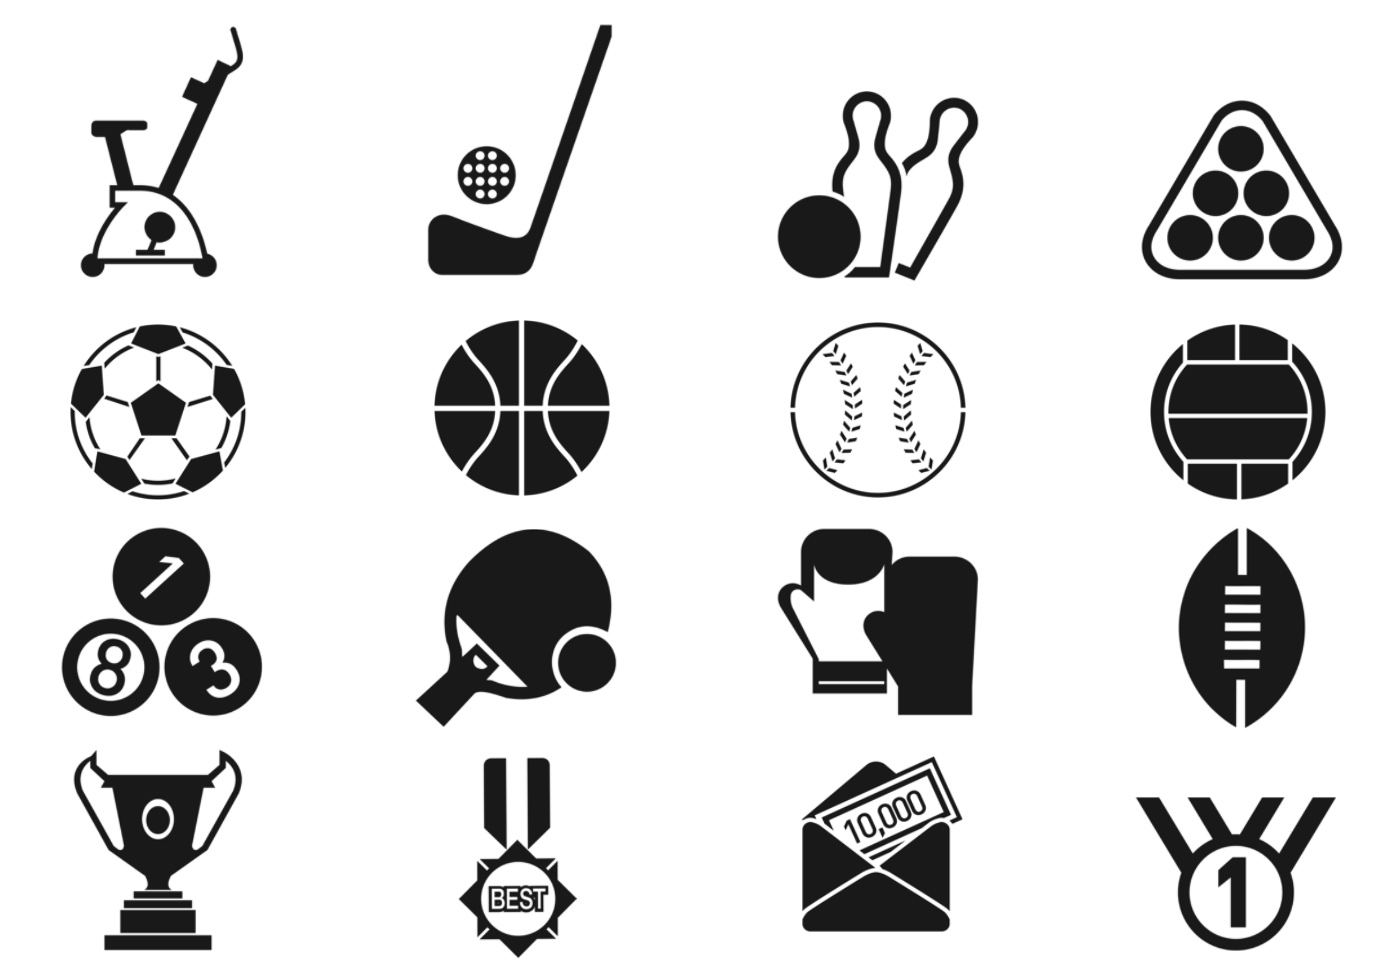 sports icon vector brushes pack football olympic sport photoshop clipart graphics vectors file ball club brusheezy awesome downloaded pictograms users